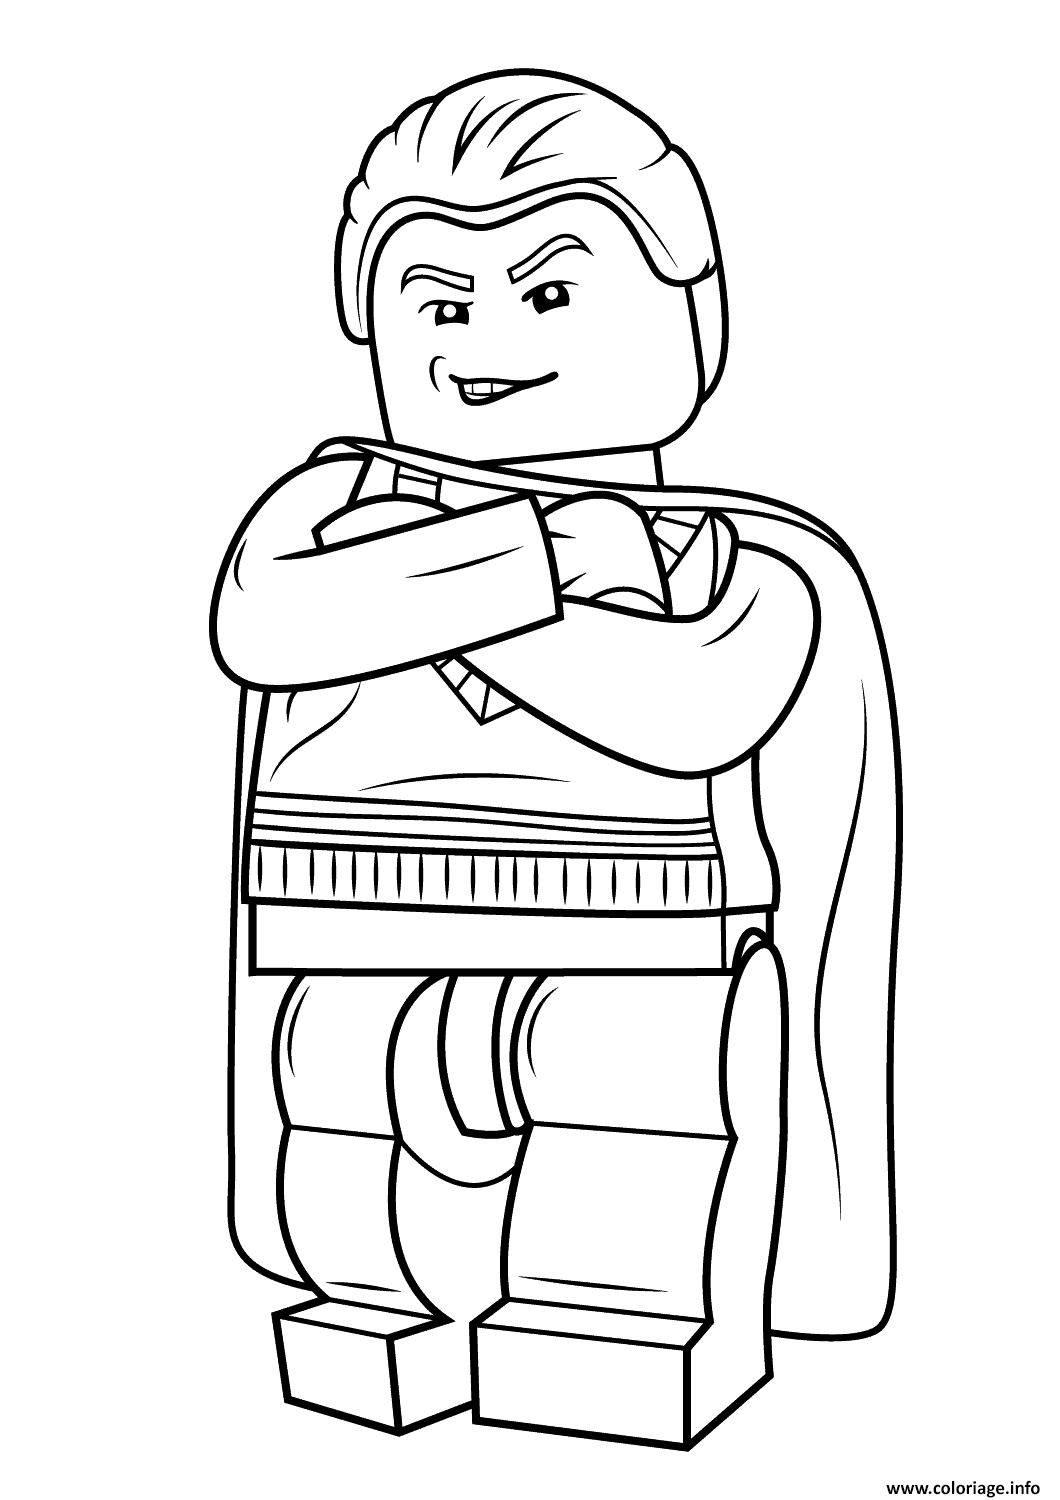 Coloriage Lego Draco Malfoy Harry Potter Jecolorie Com